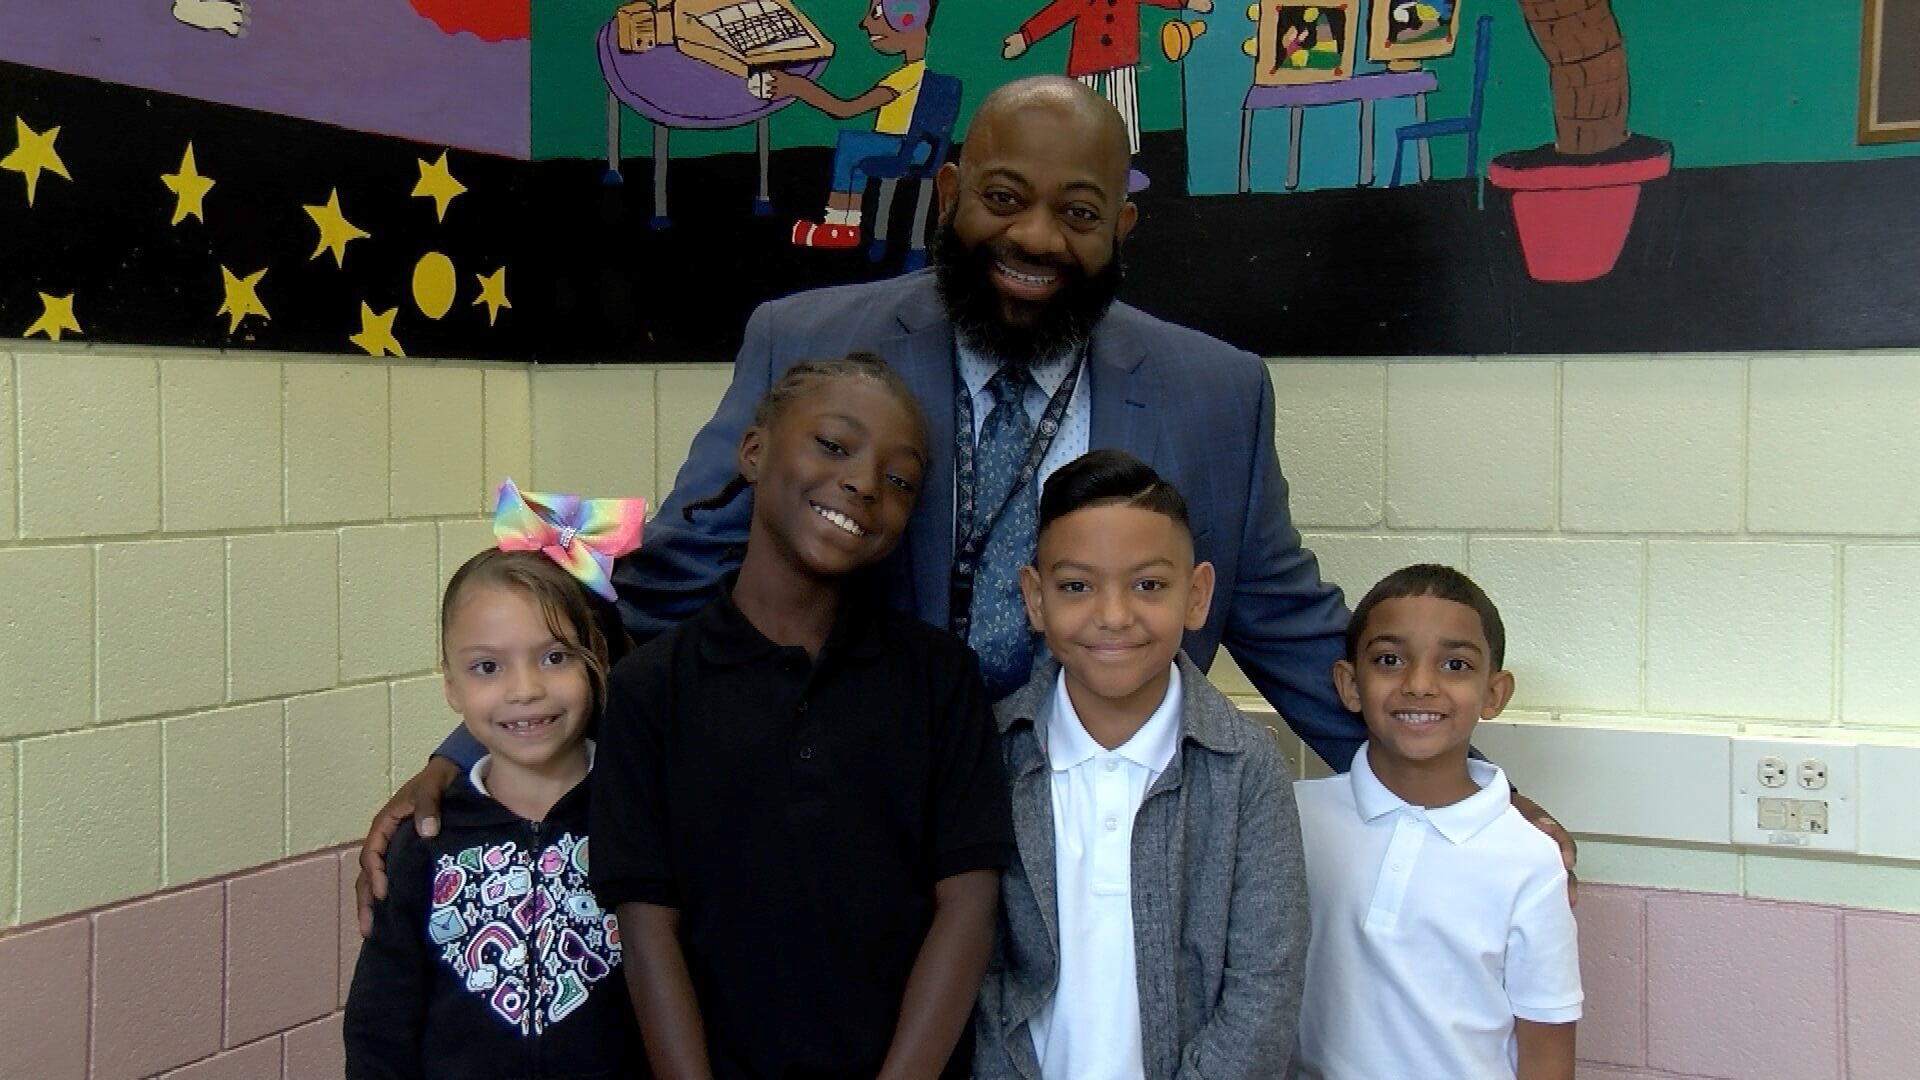 Morgan school principal posing with students